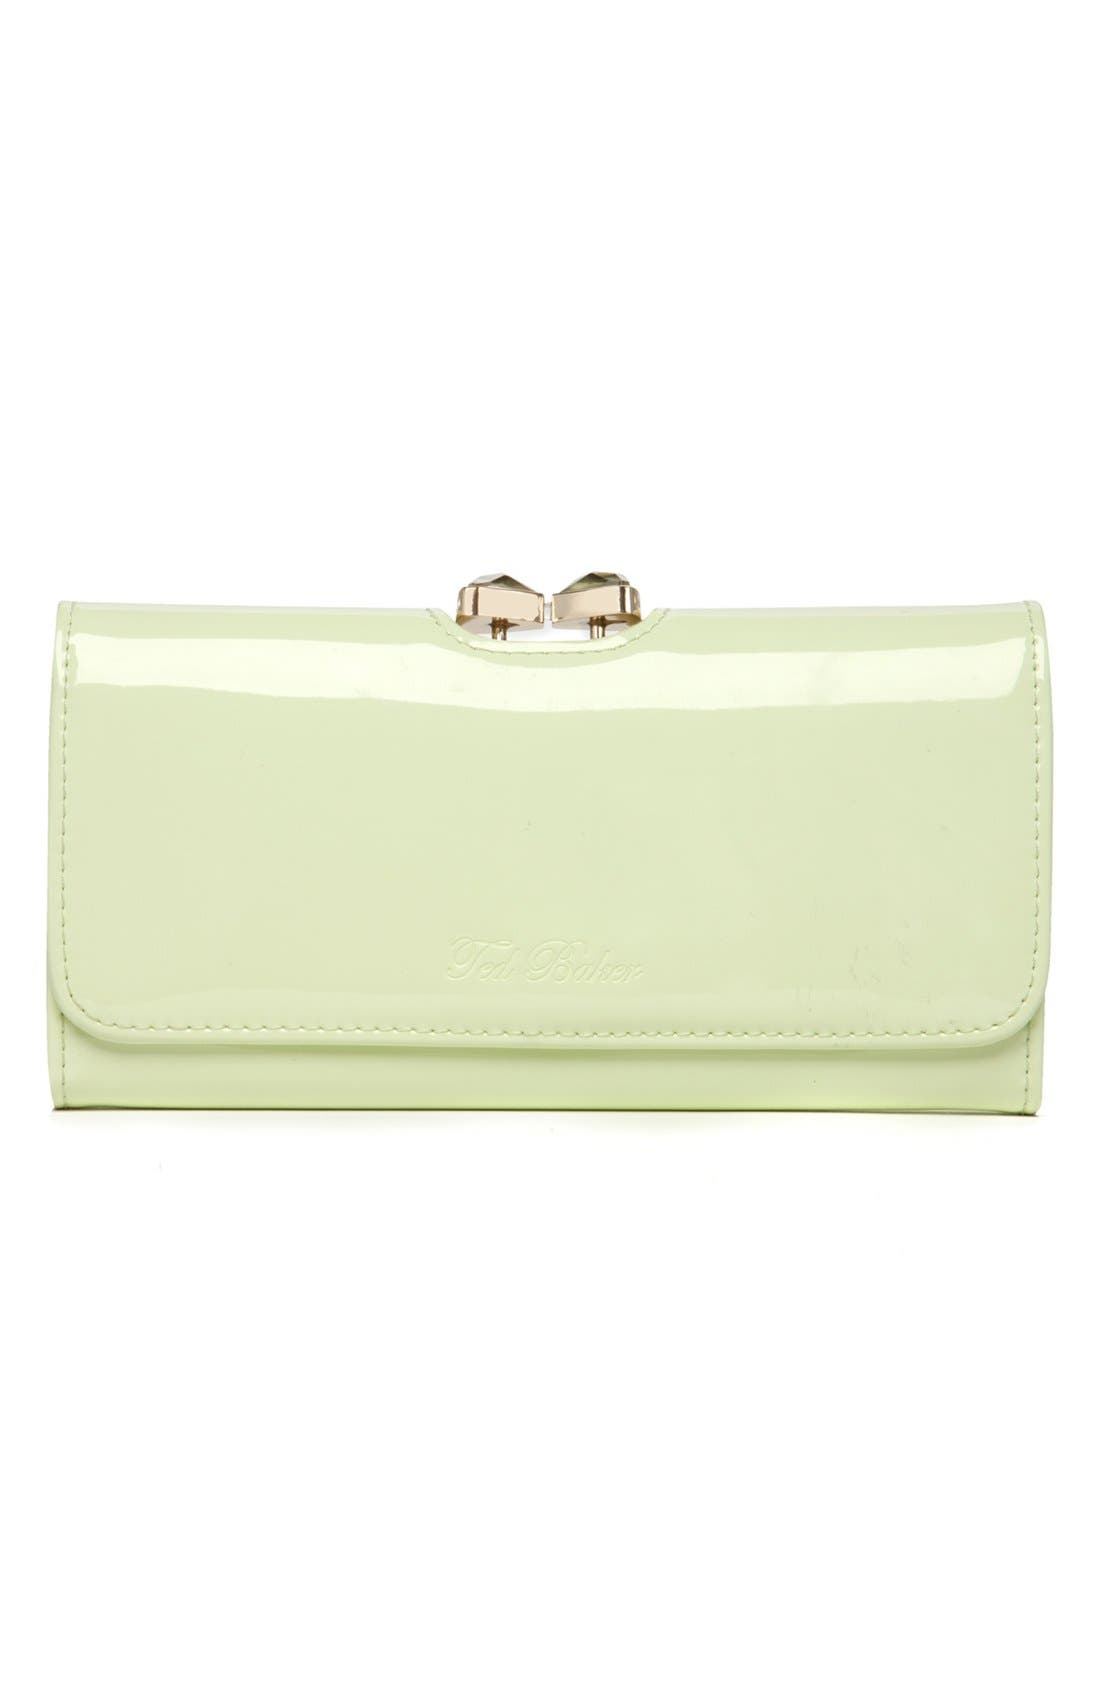 Alternate Image 1 Selected - Ted Baker London 'Bow Crystal' Matinee Wallet